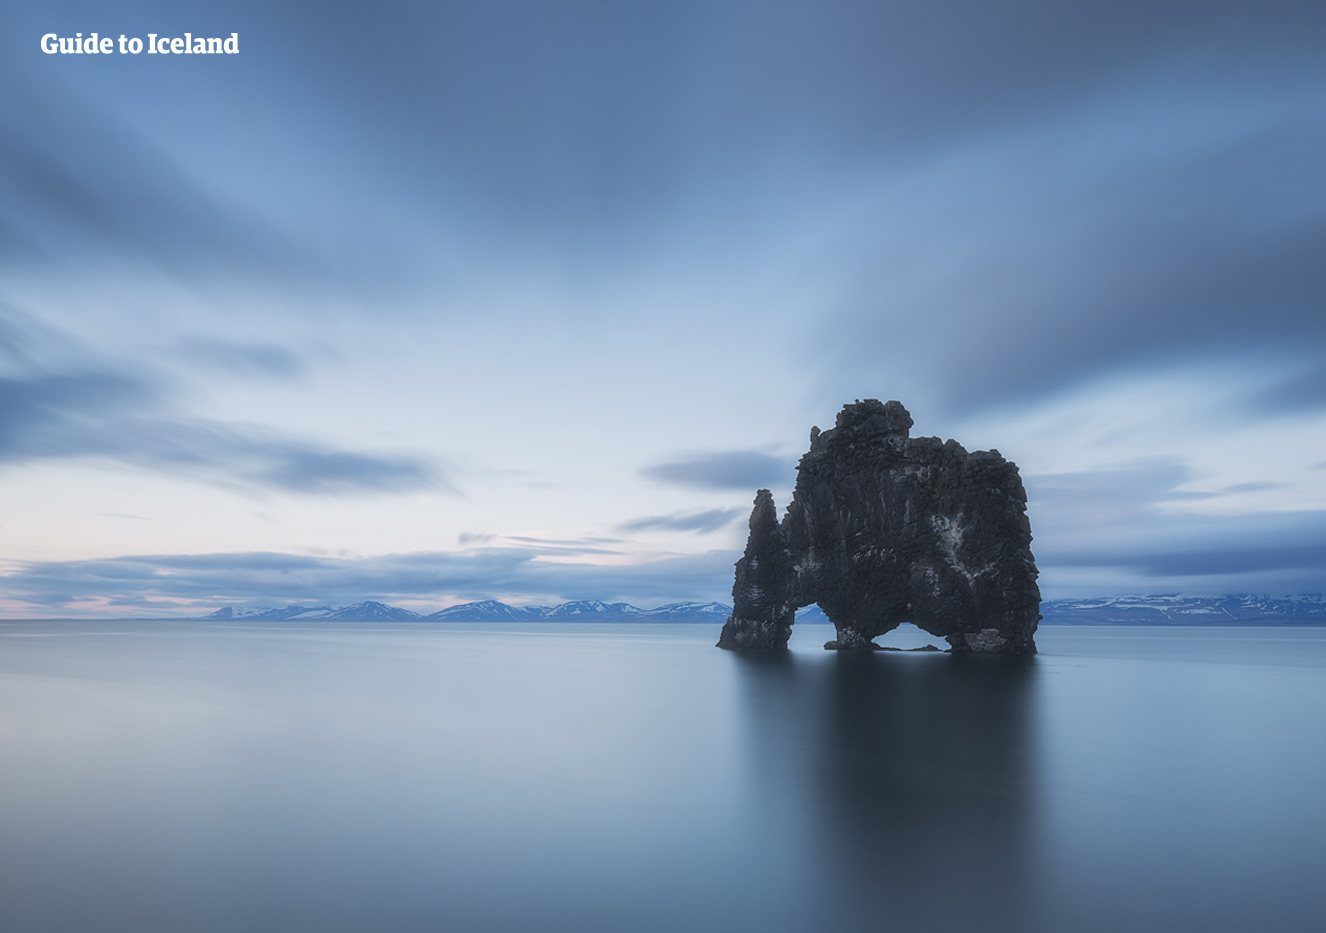 Hvitserkur is a fascinating rock formation in Iceland's west